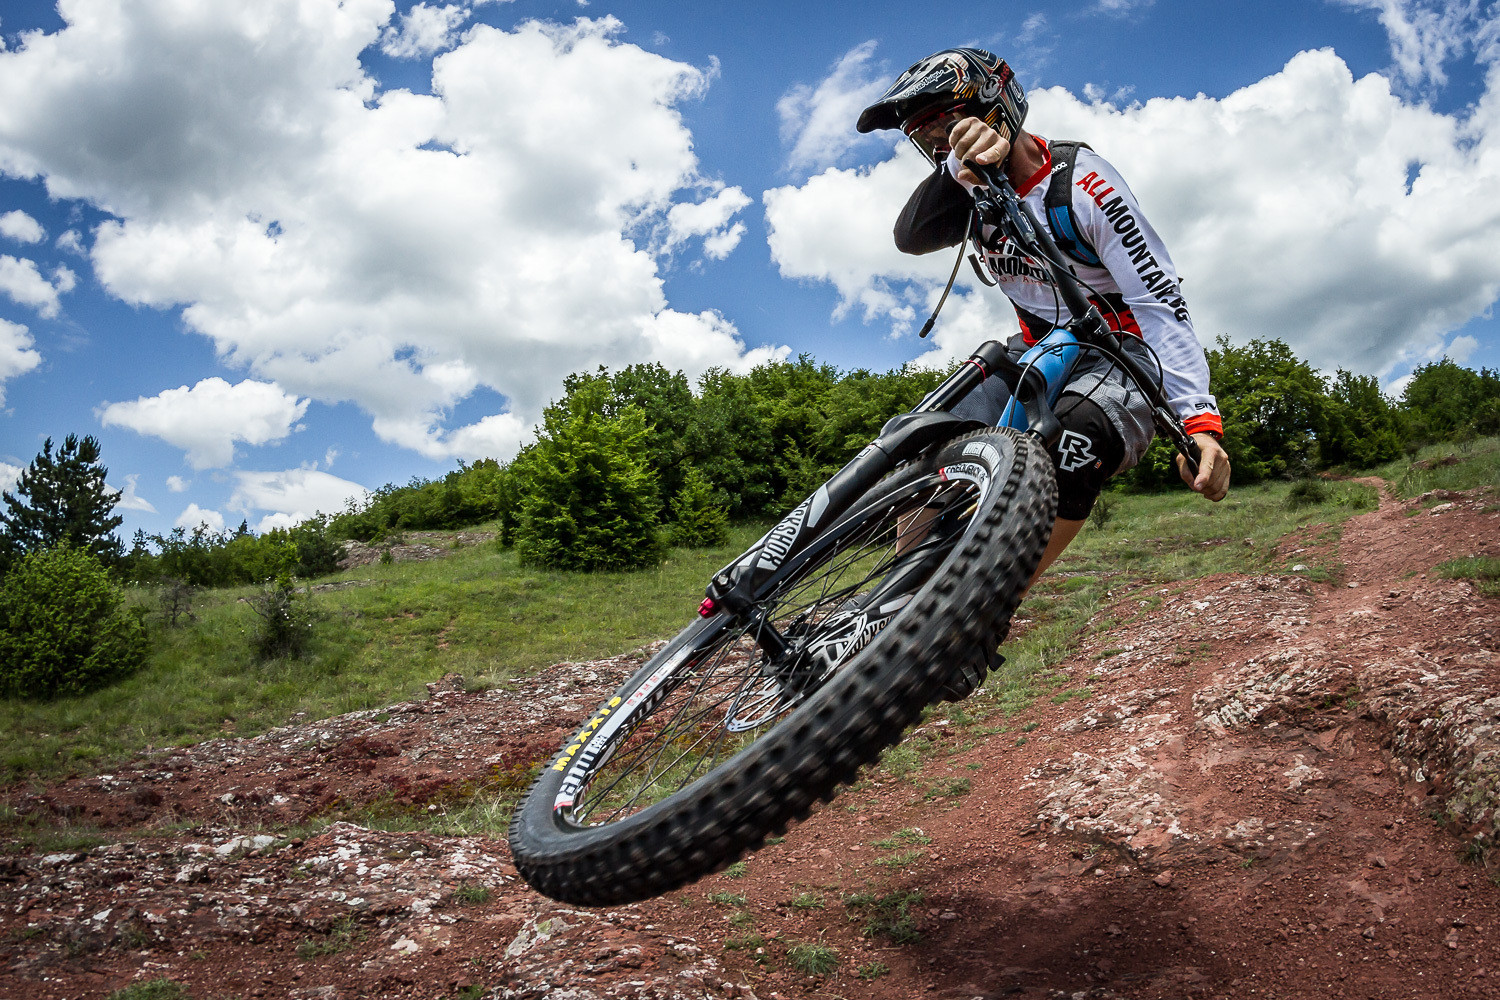 MG 0245 - Pulse Cycles - Mountain Biking Pictures - Vital MTB